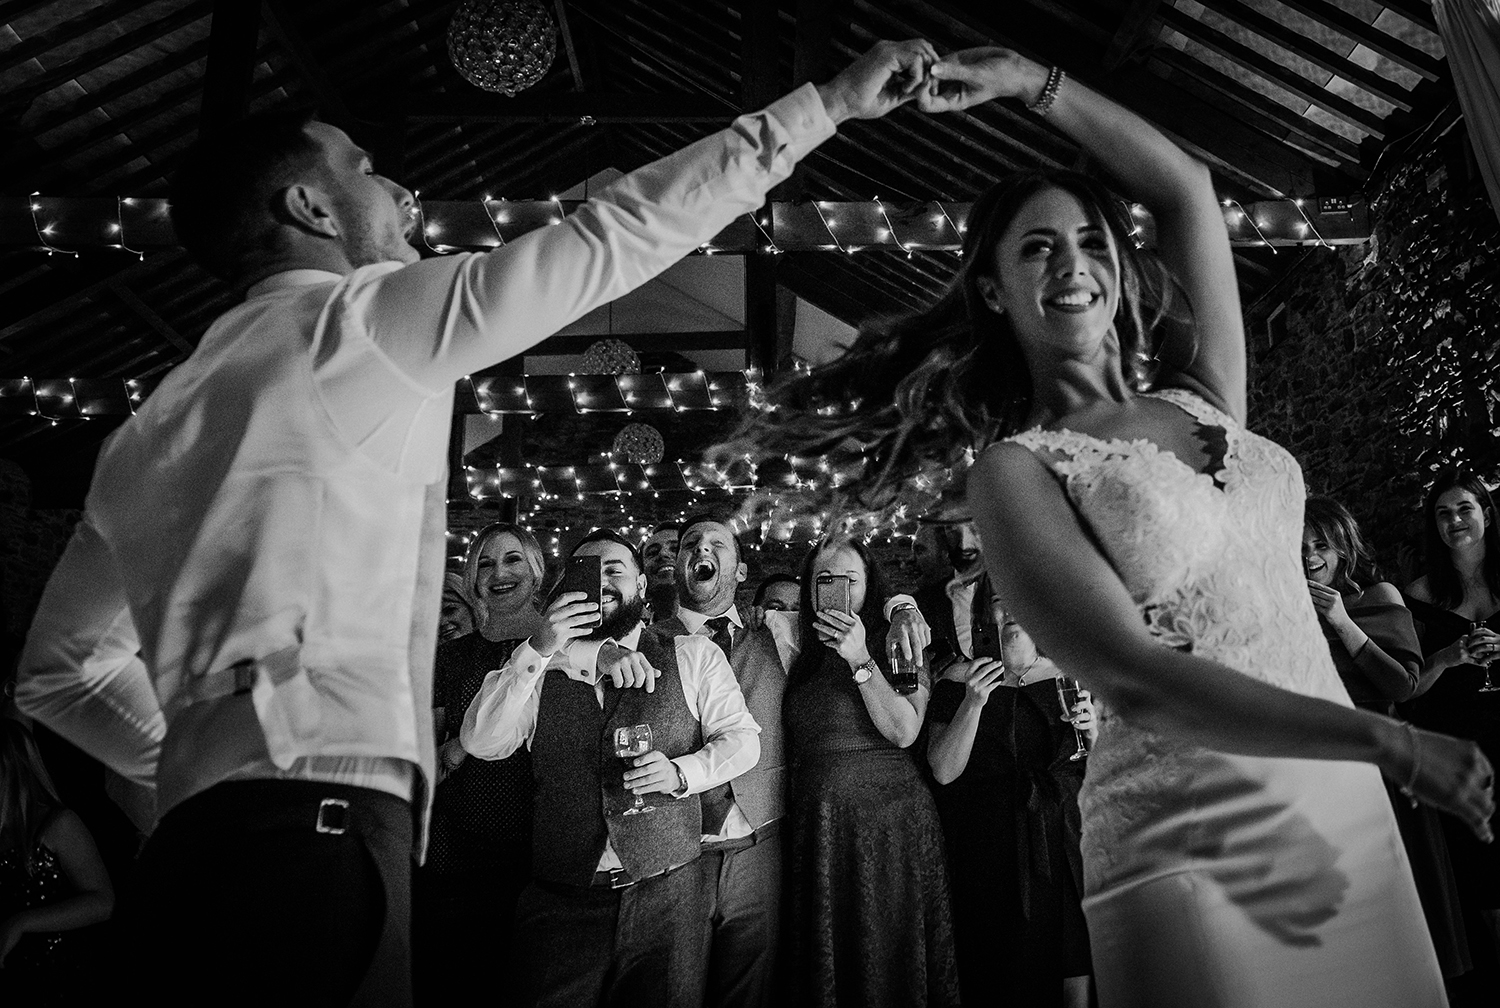 bw photo of bride and groom trirling during the first dance. Guest are the focus who are laughing and filming on their phones in the background